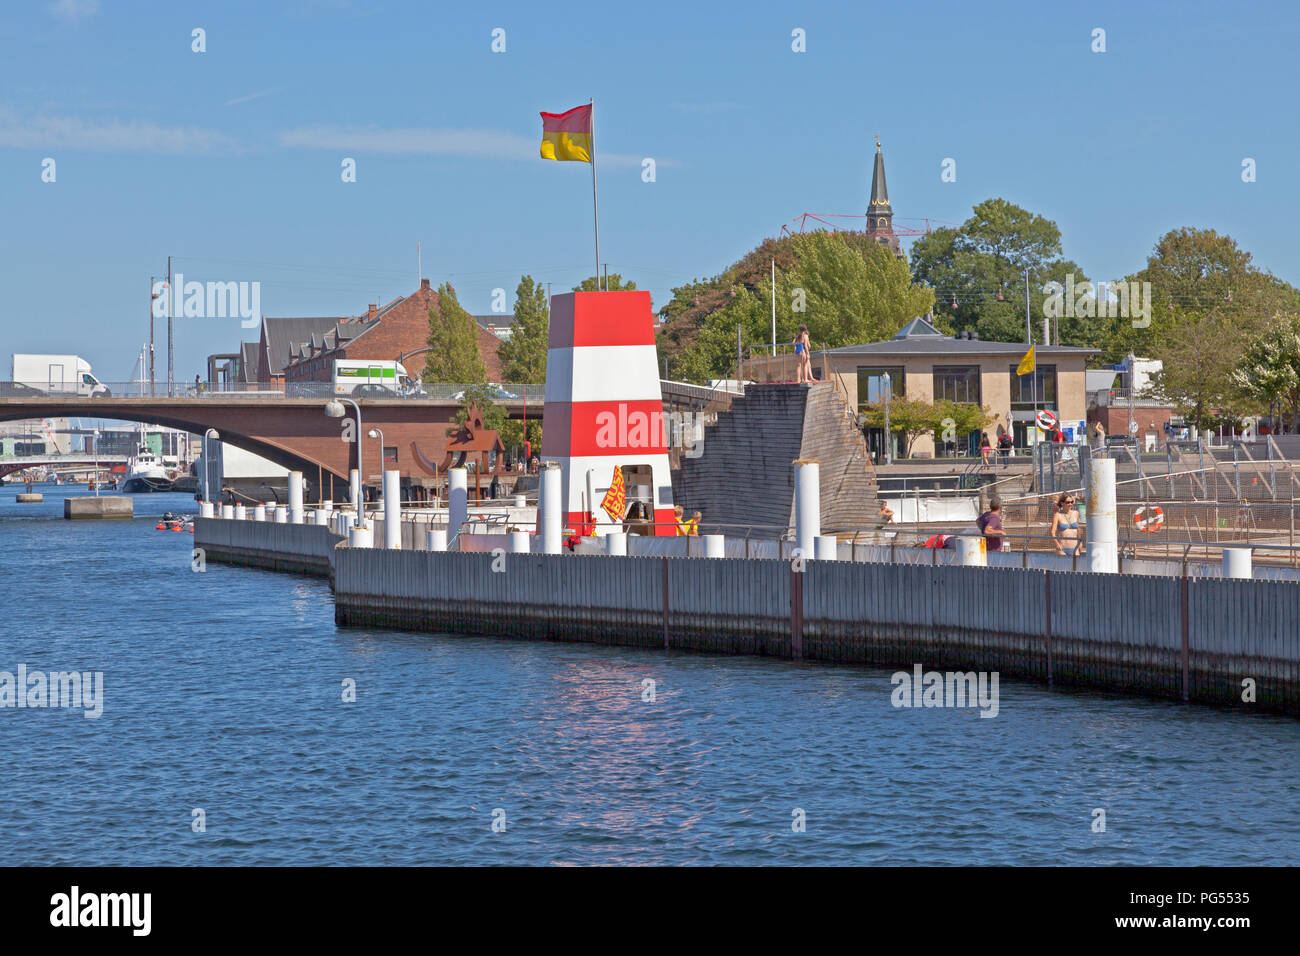 The Copenhagen Harbour Bath at Islands Brygge in the inner harbour of Copenhagen on a warm and  sunny summer day seen from the main harbour canal. Stock Photo